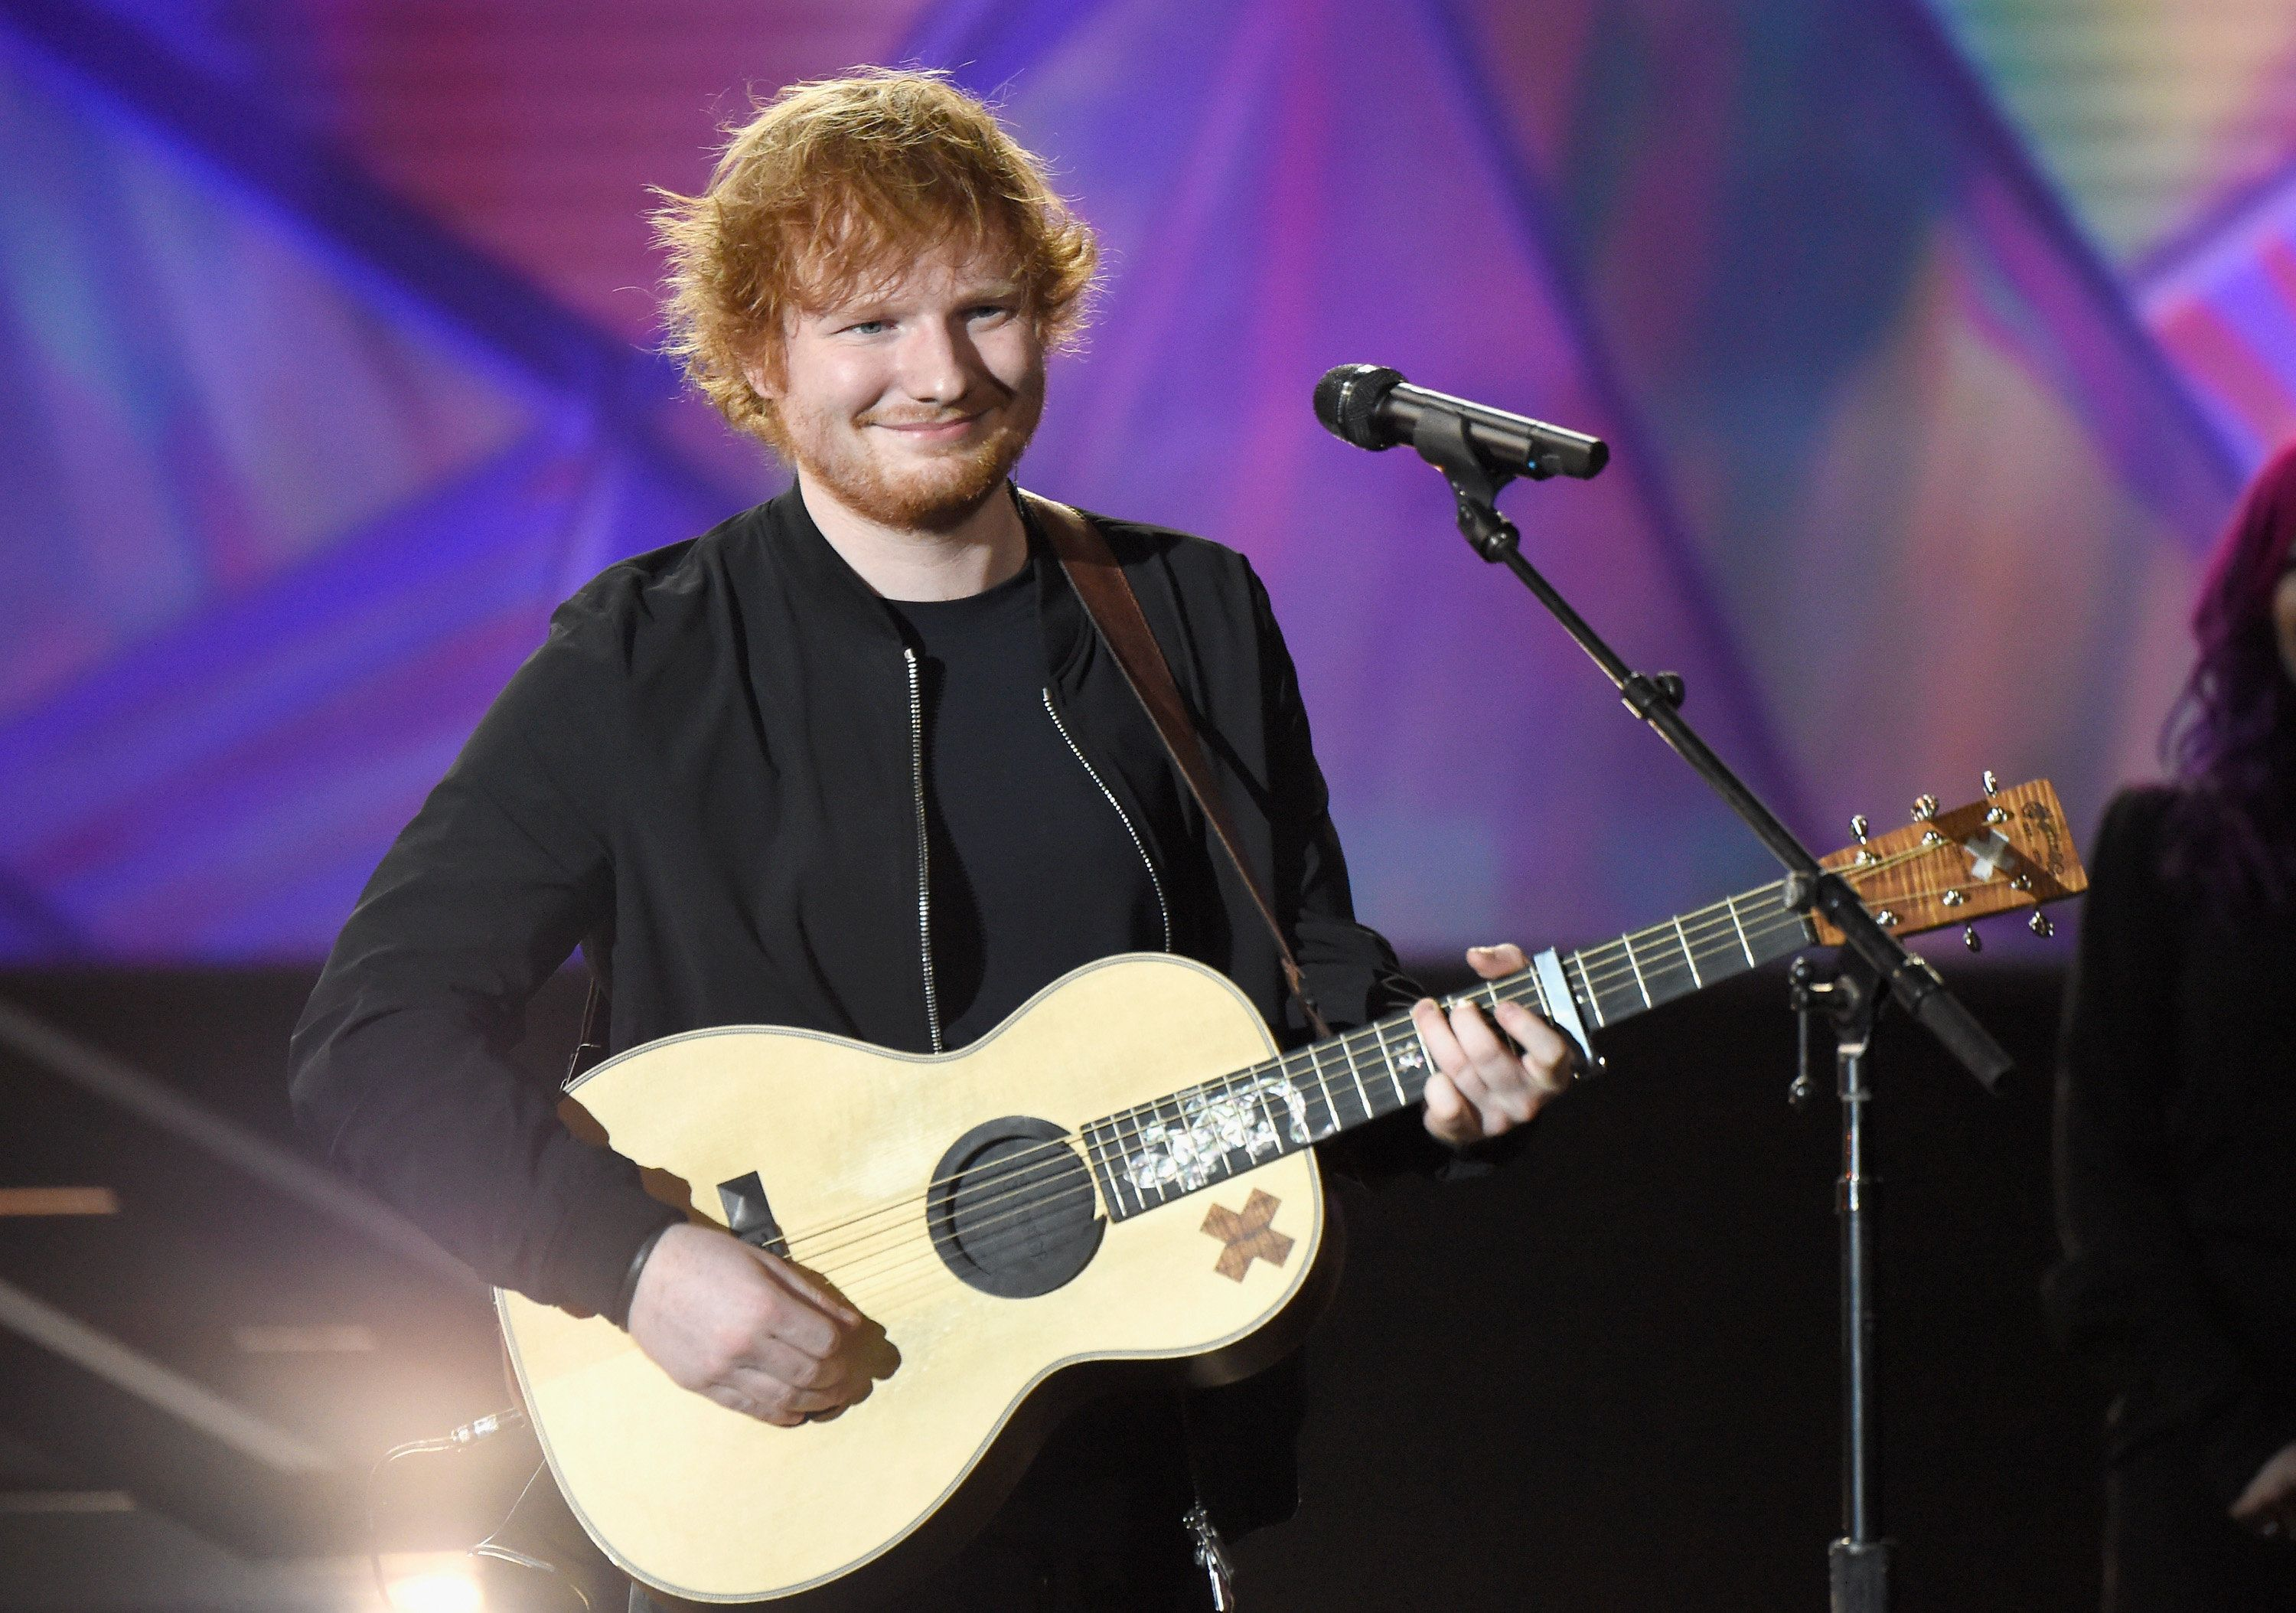 LOS ANGELES, CA - NOVEMBER 18:  Recording artist Ed Sheeran performs onstage at A+E Networks 'Shining A Light' concert at The Shrine Auditorium on November 18, 2015 in Los Angeles, California.  (Photo by Kevin Mazur/Getty Images for A+E Networks)